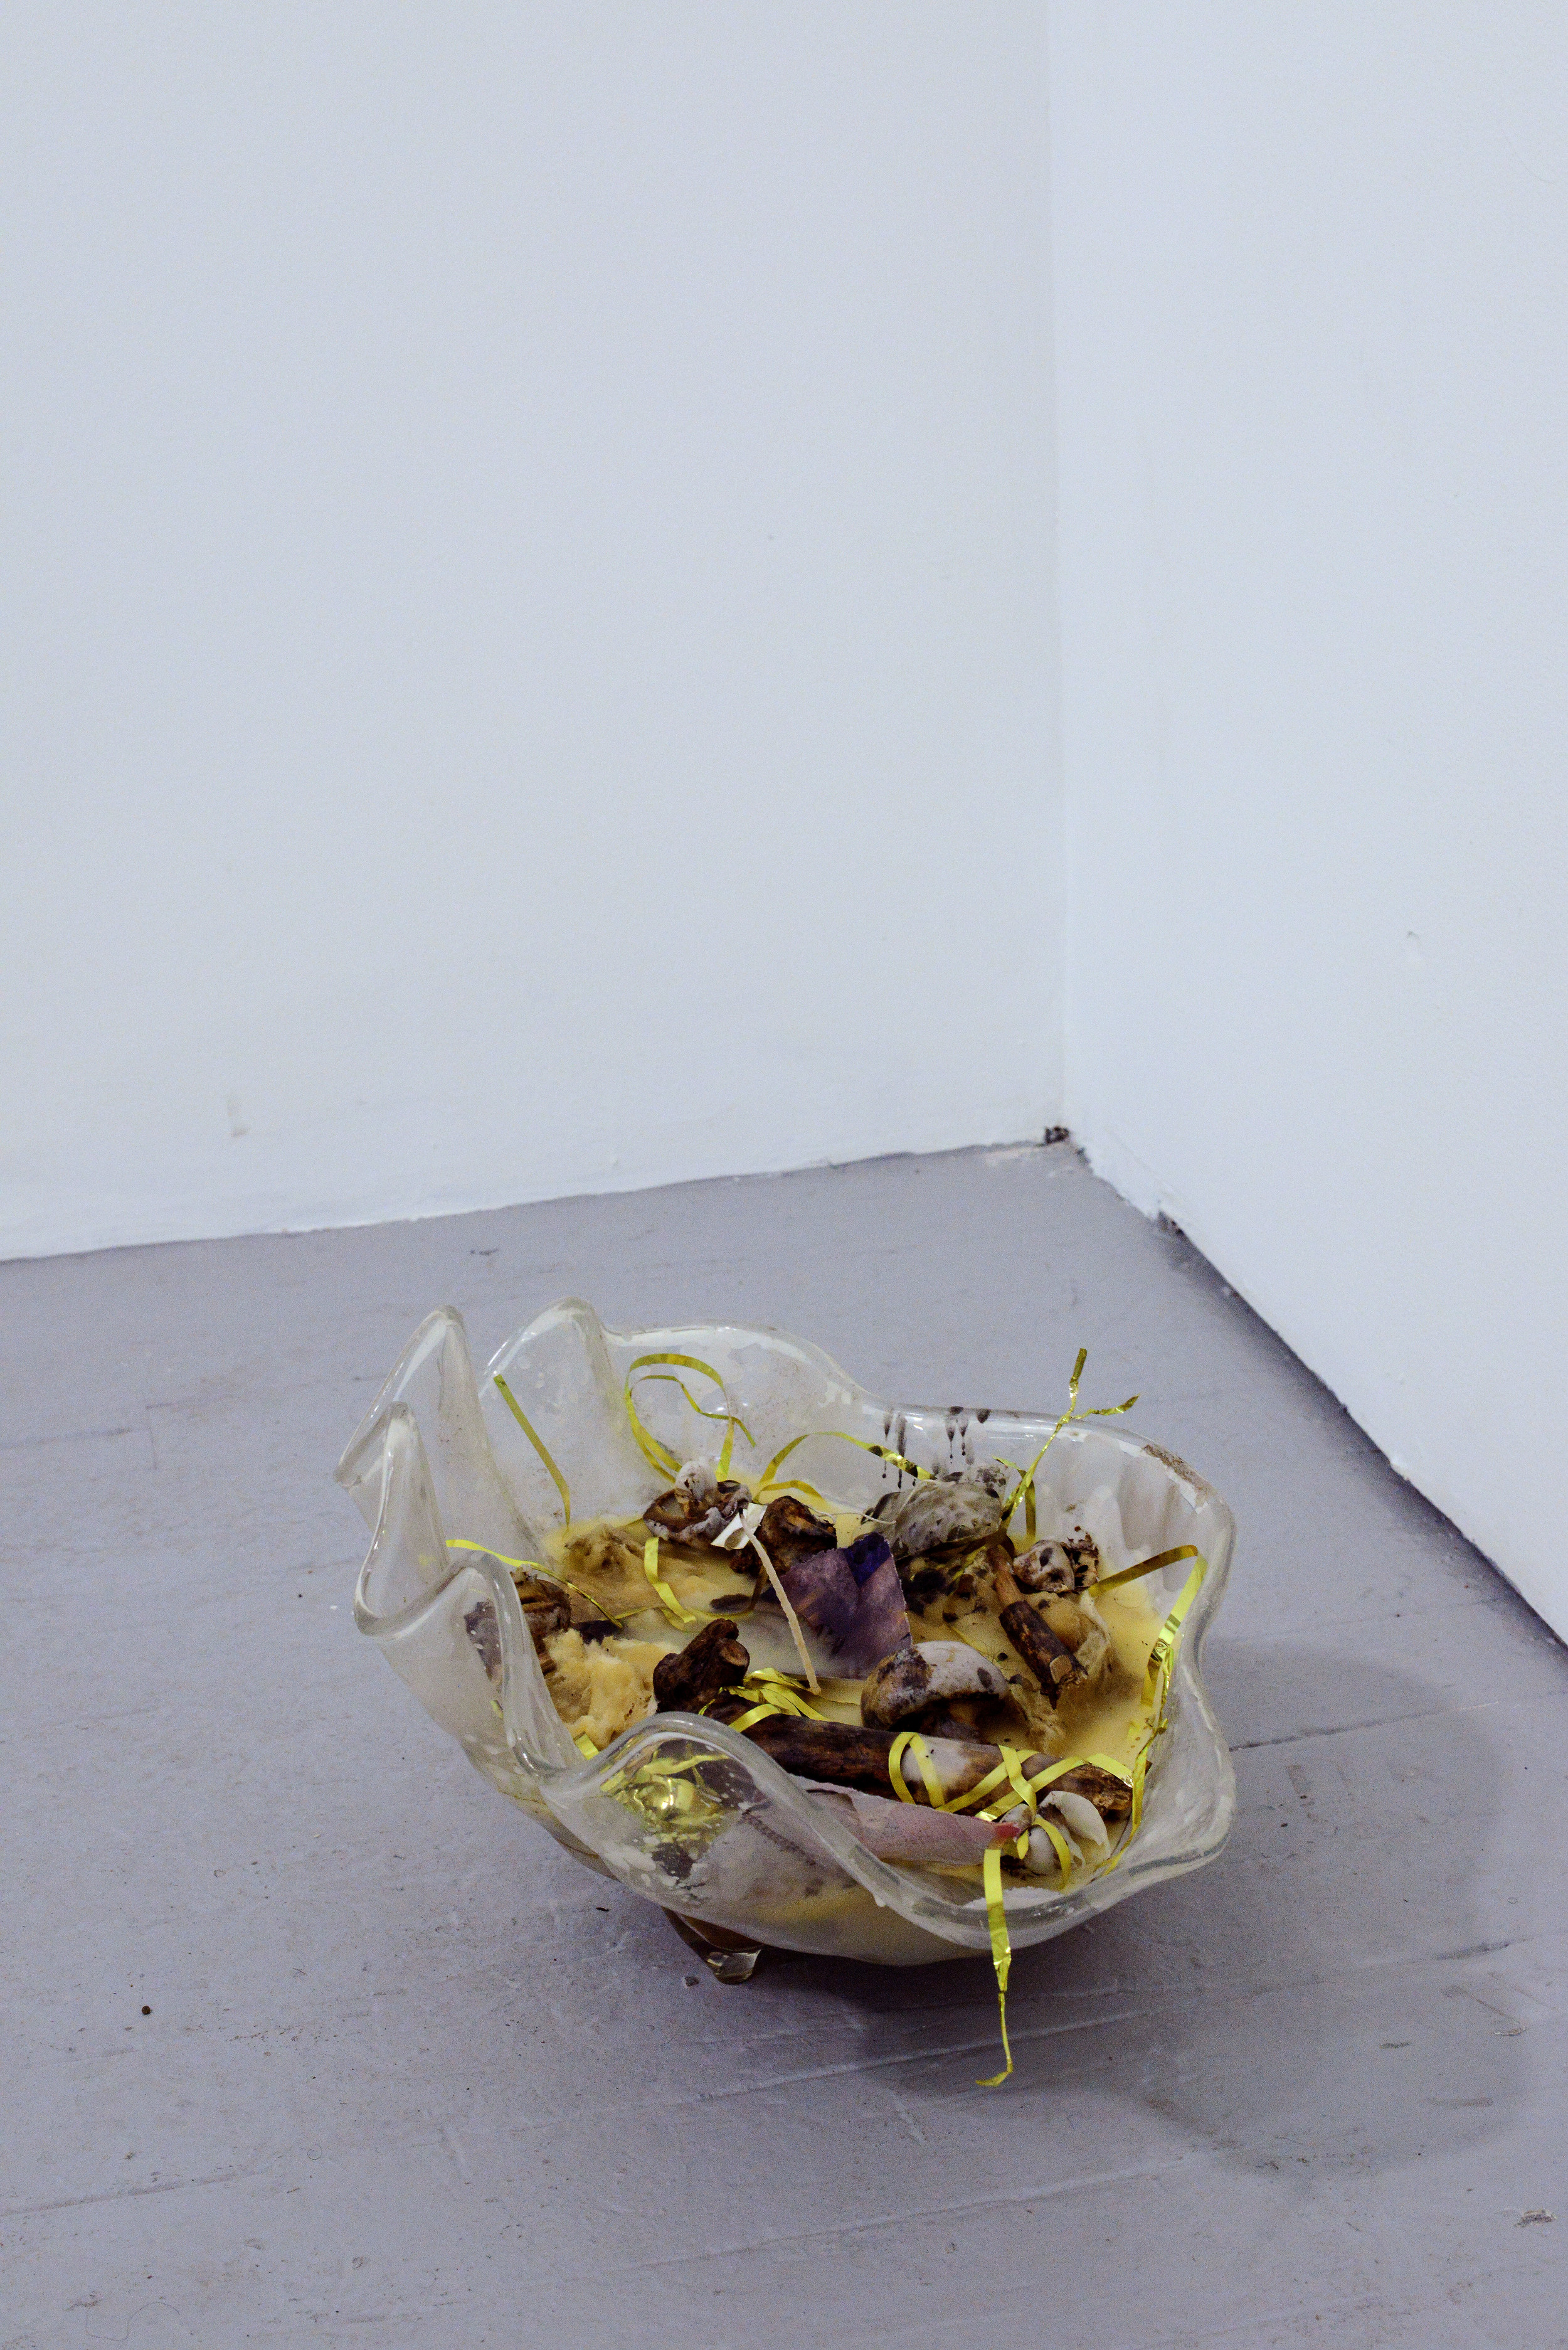 David Anderson   Clam Shell Candle   Wax, magazine collage, mushrooms, tinsel,  tea bag, sticks, insulation fiberglass, candle  wick, plastic  2015